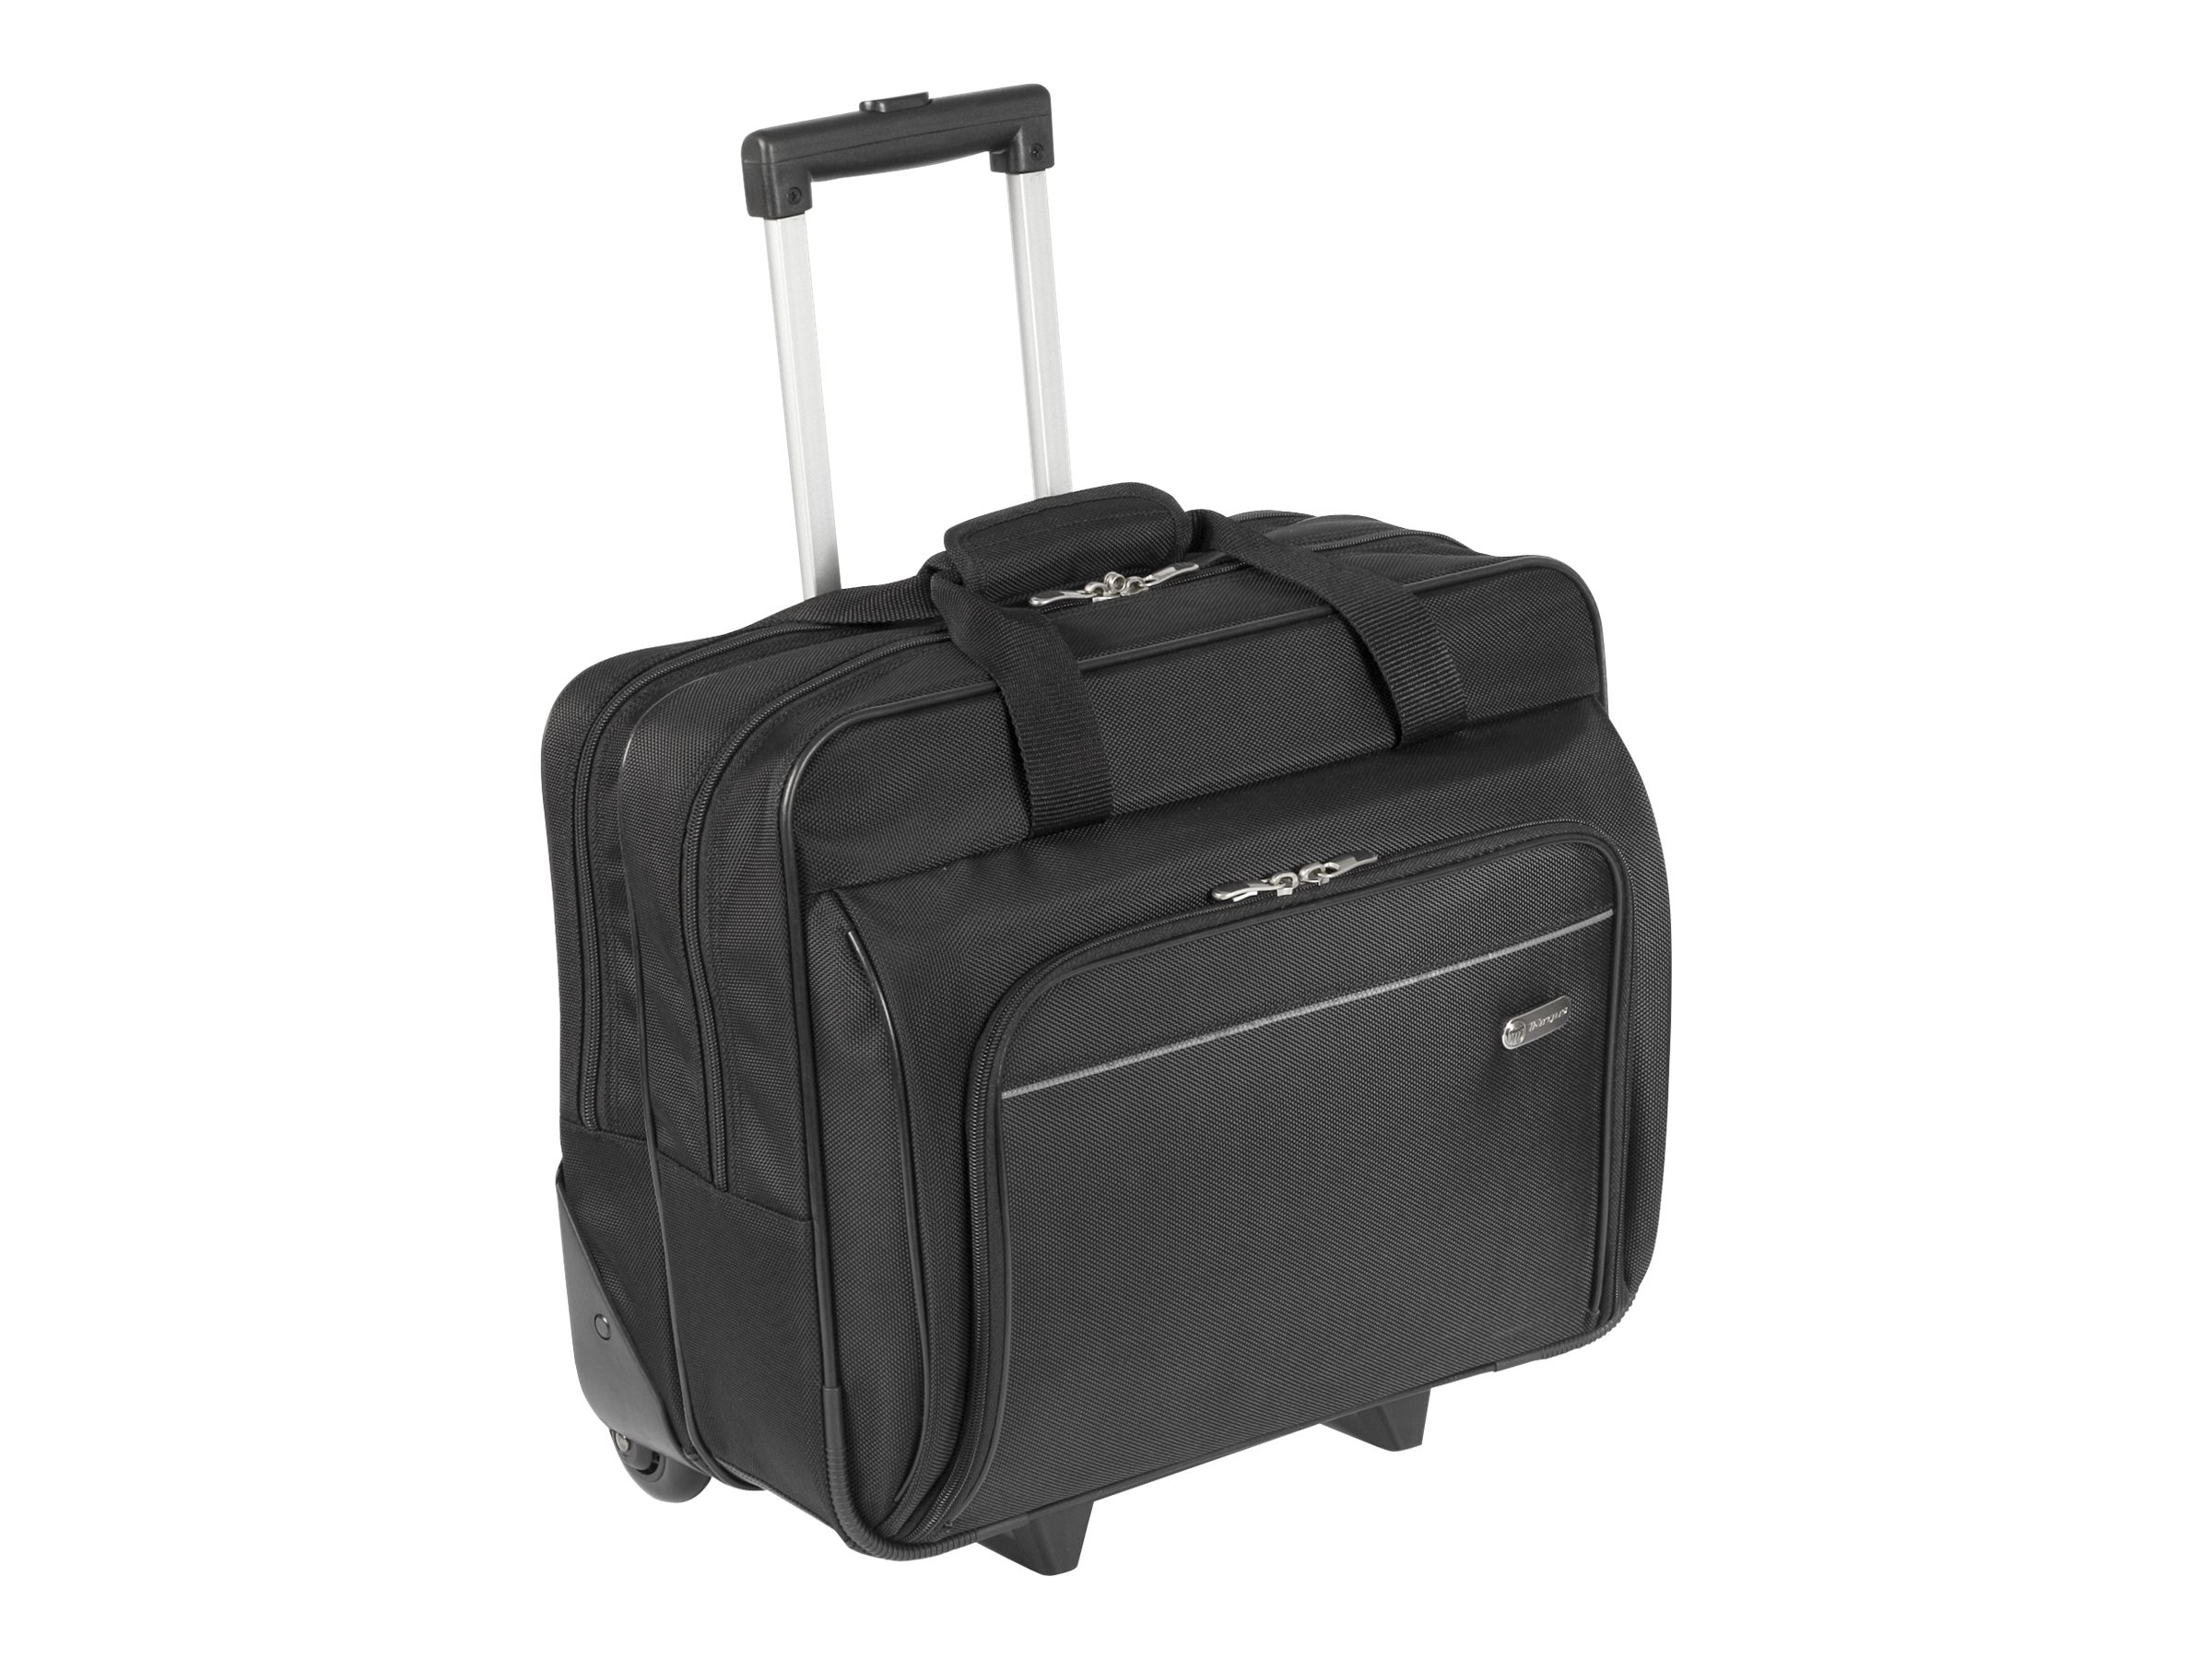 Lenovo Rolling Case for 16 Laptop, Targus, Black, 78000324, 20525031, Carrying Cases - Notebook